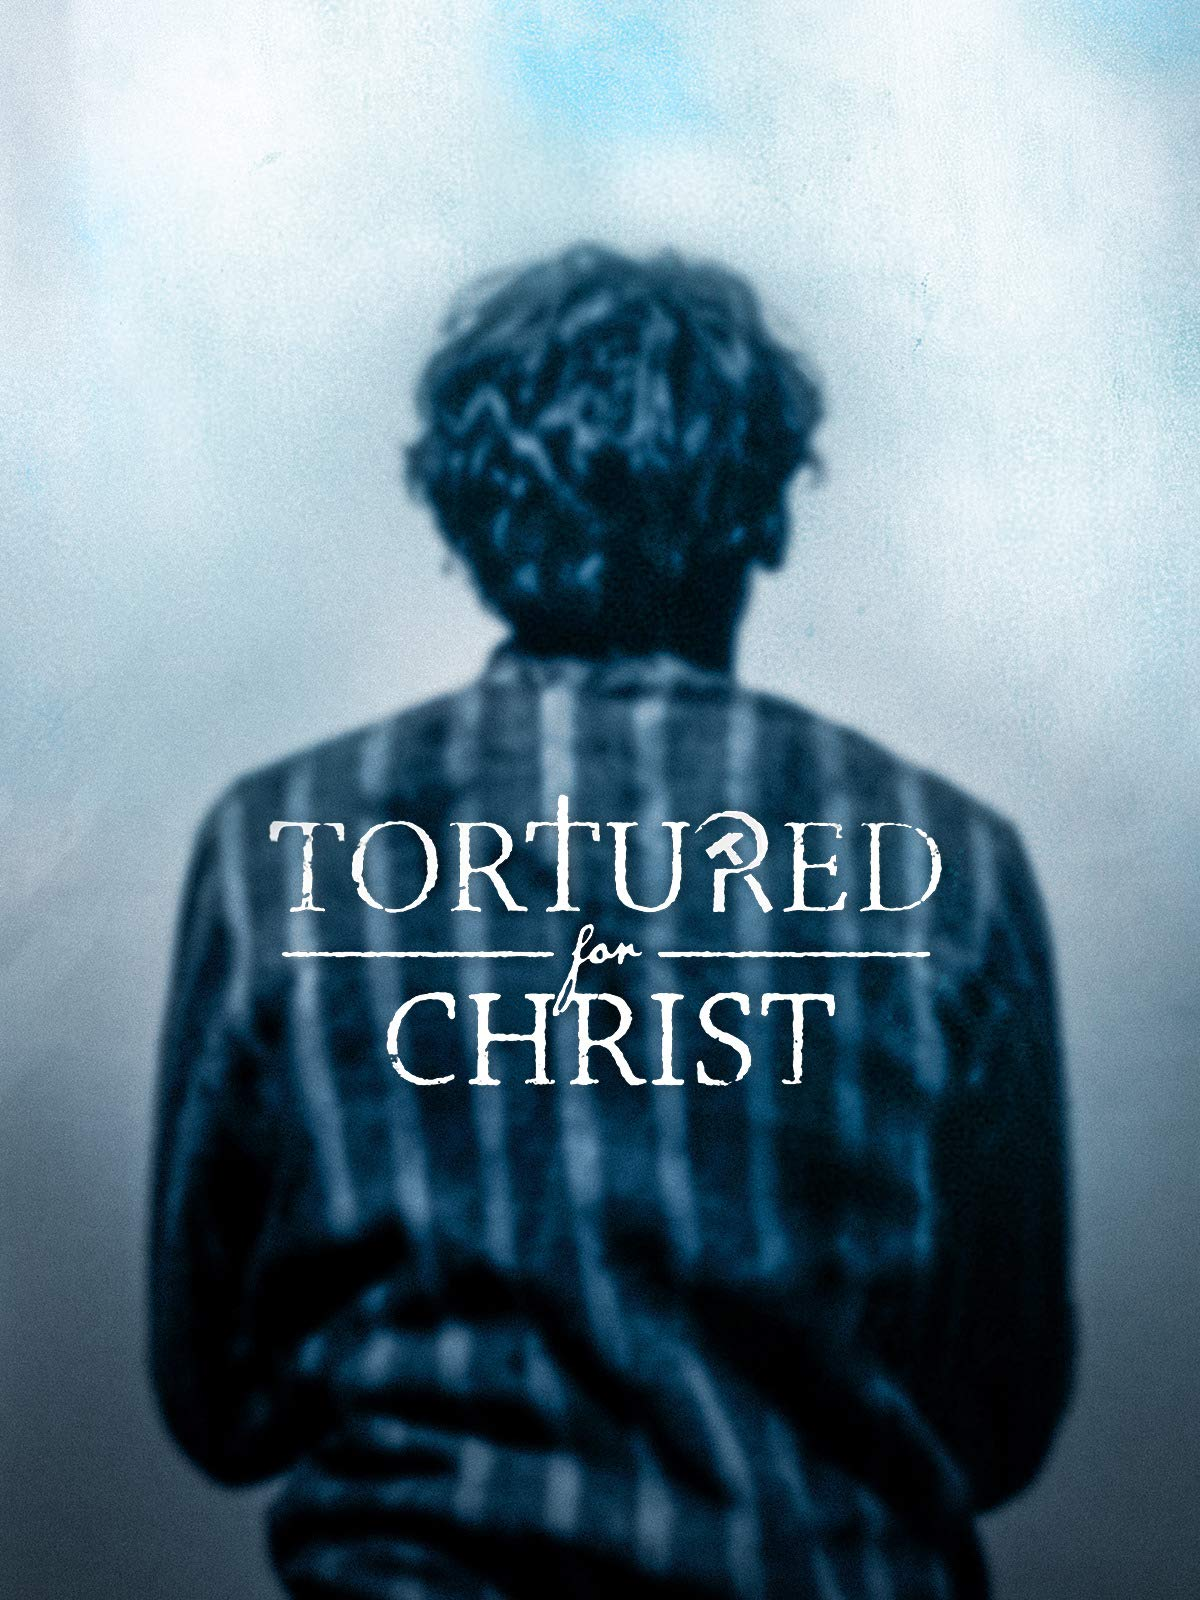 Tortured For Christ Joseph Smith Foundation